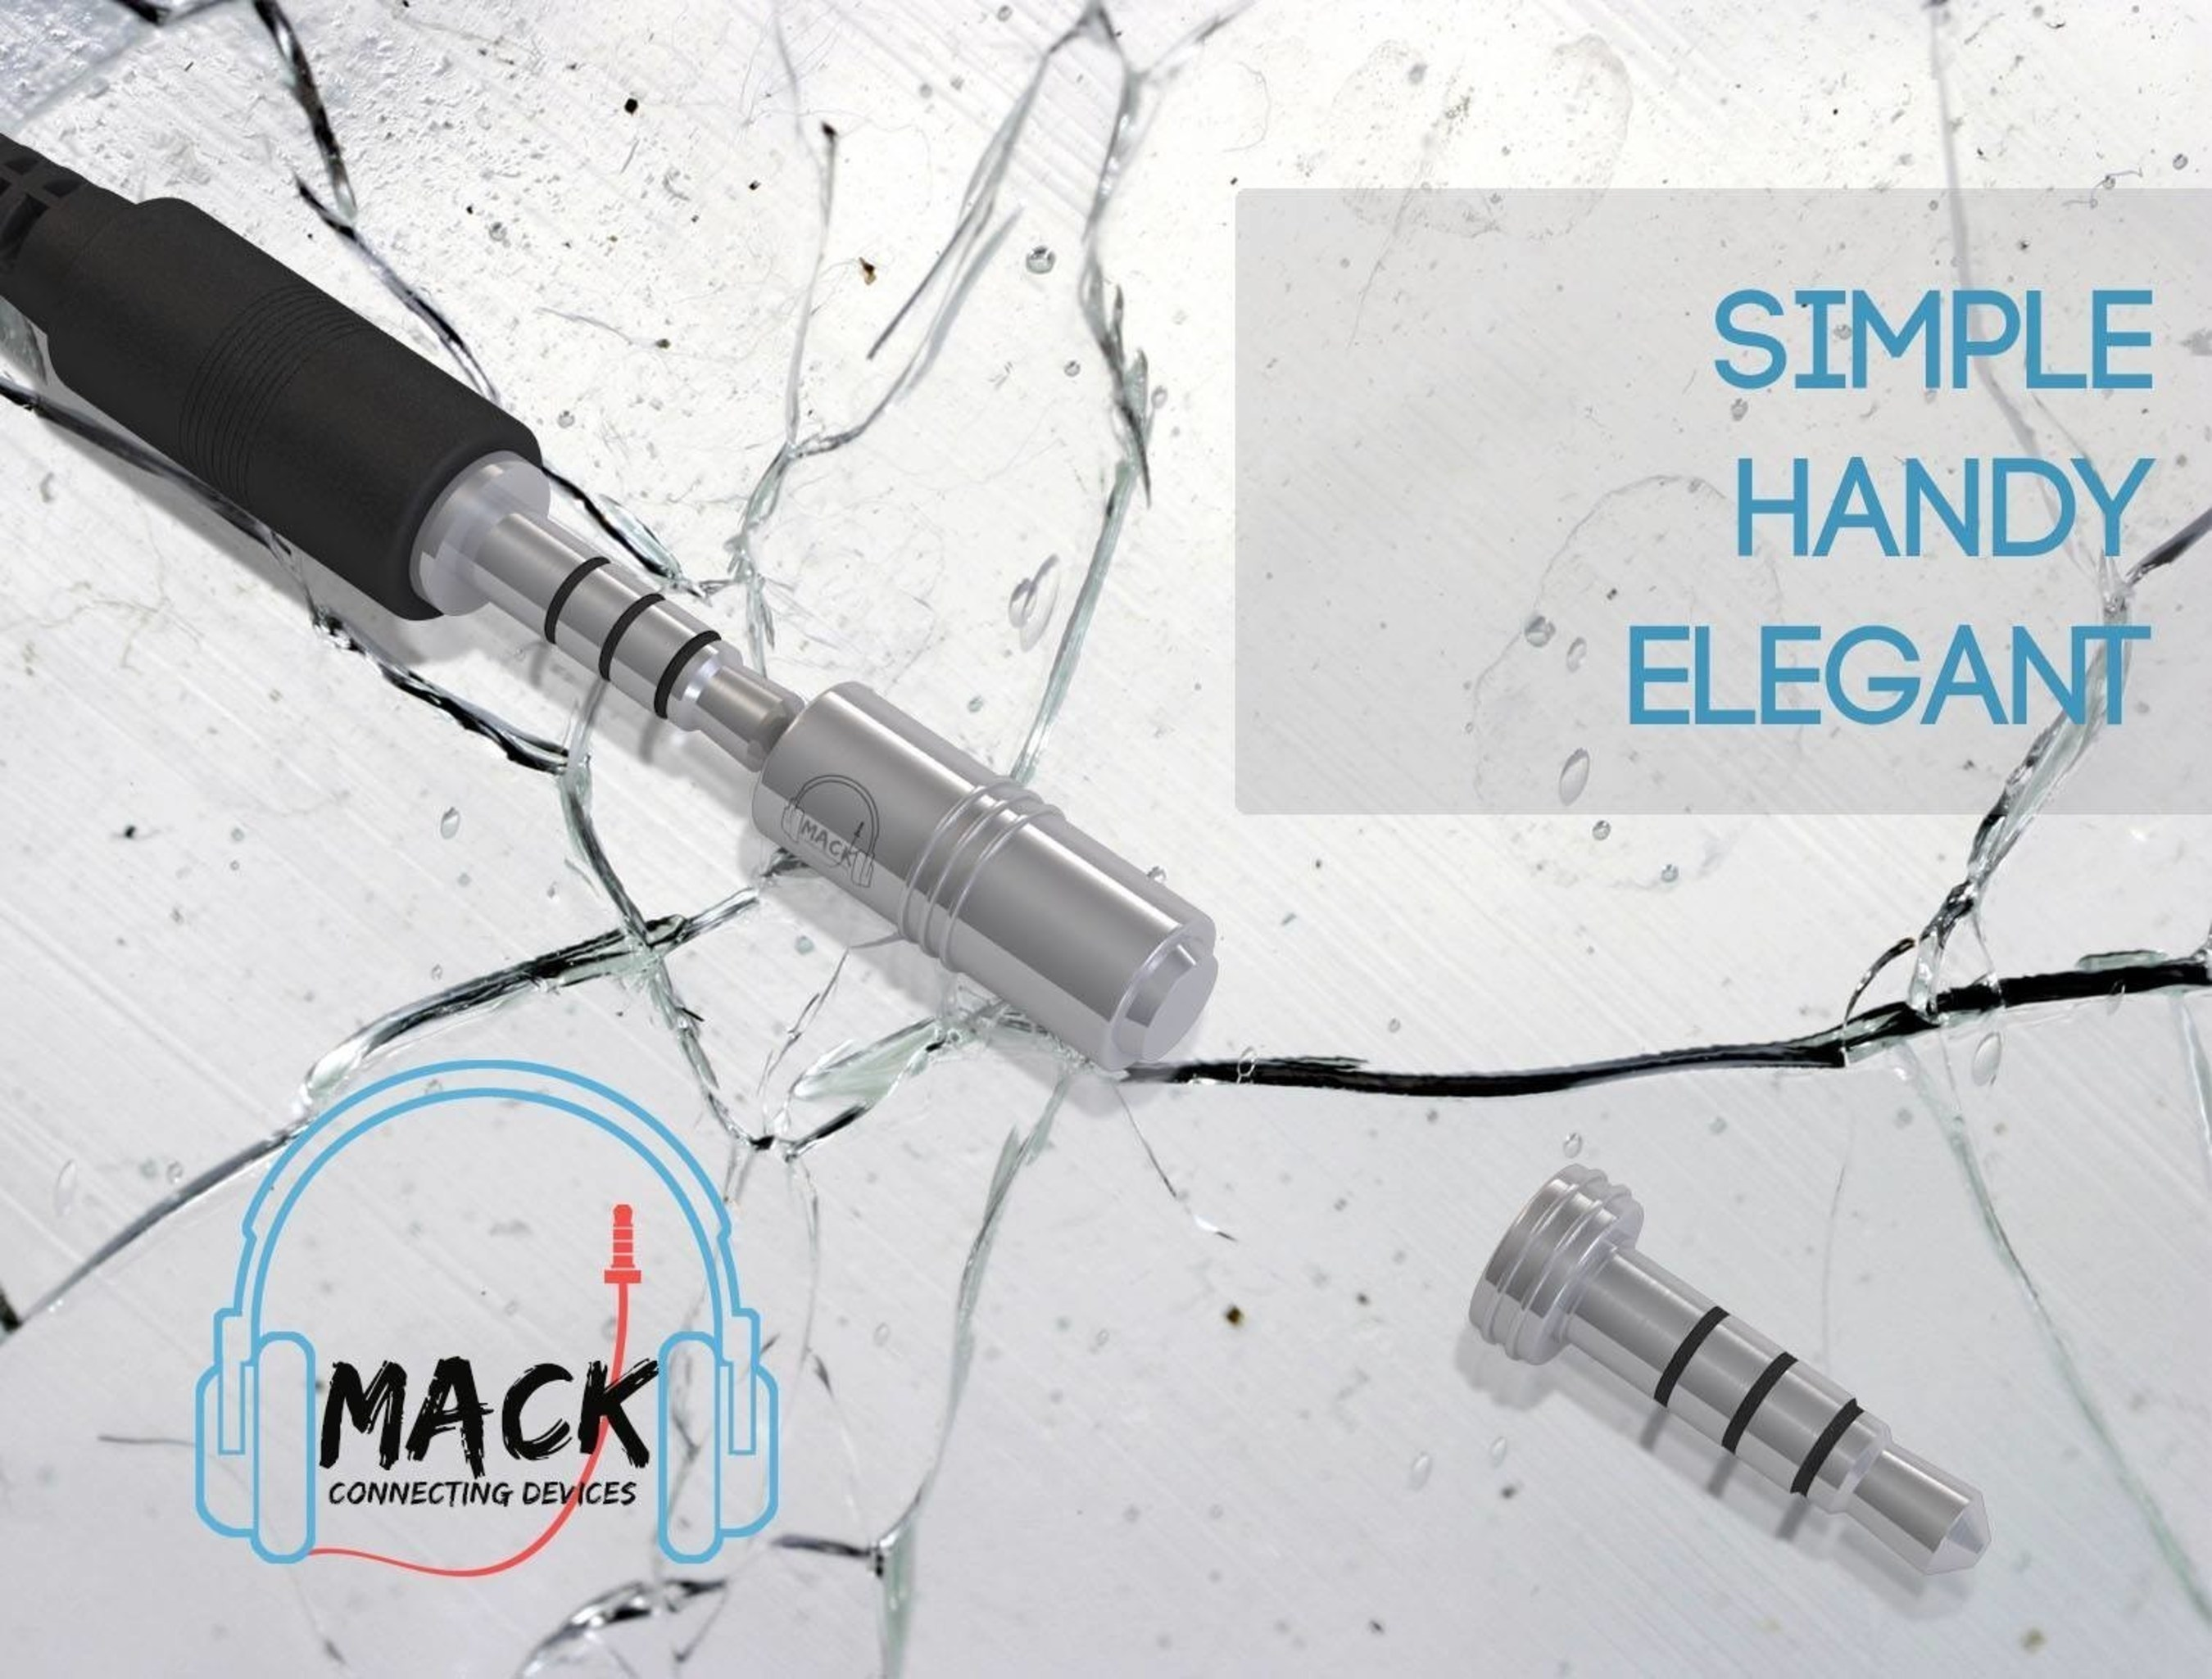 Mack-Magnetic Launches a Campaign to Bring the Mack Experience to Everyone